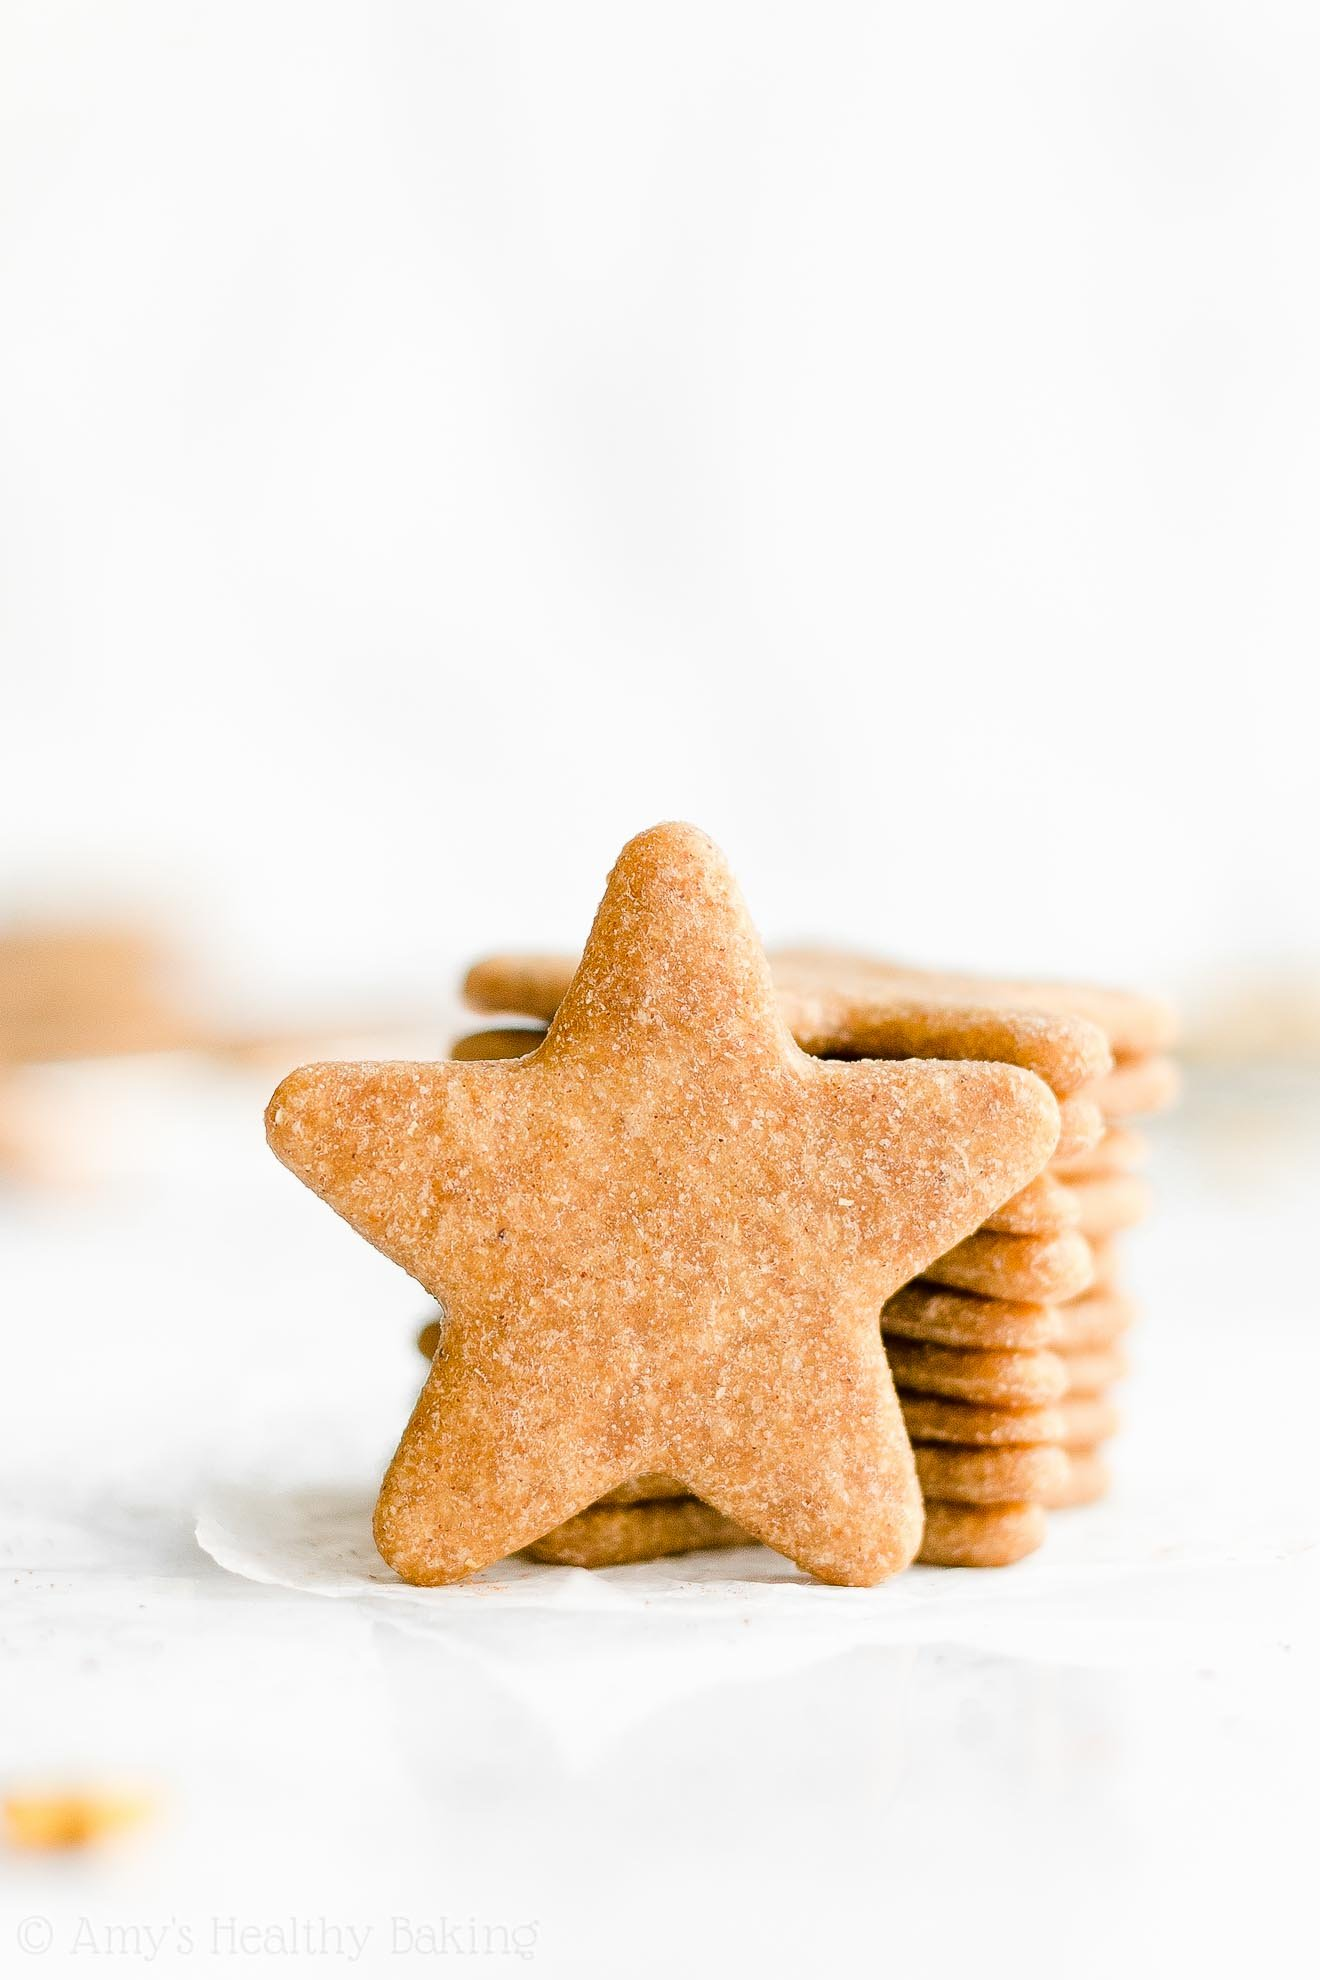 Easy Healthy Whole Wheat Soft Chewy Low Sugar Eggnog Sugar Cookies